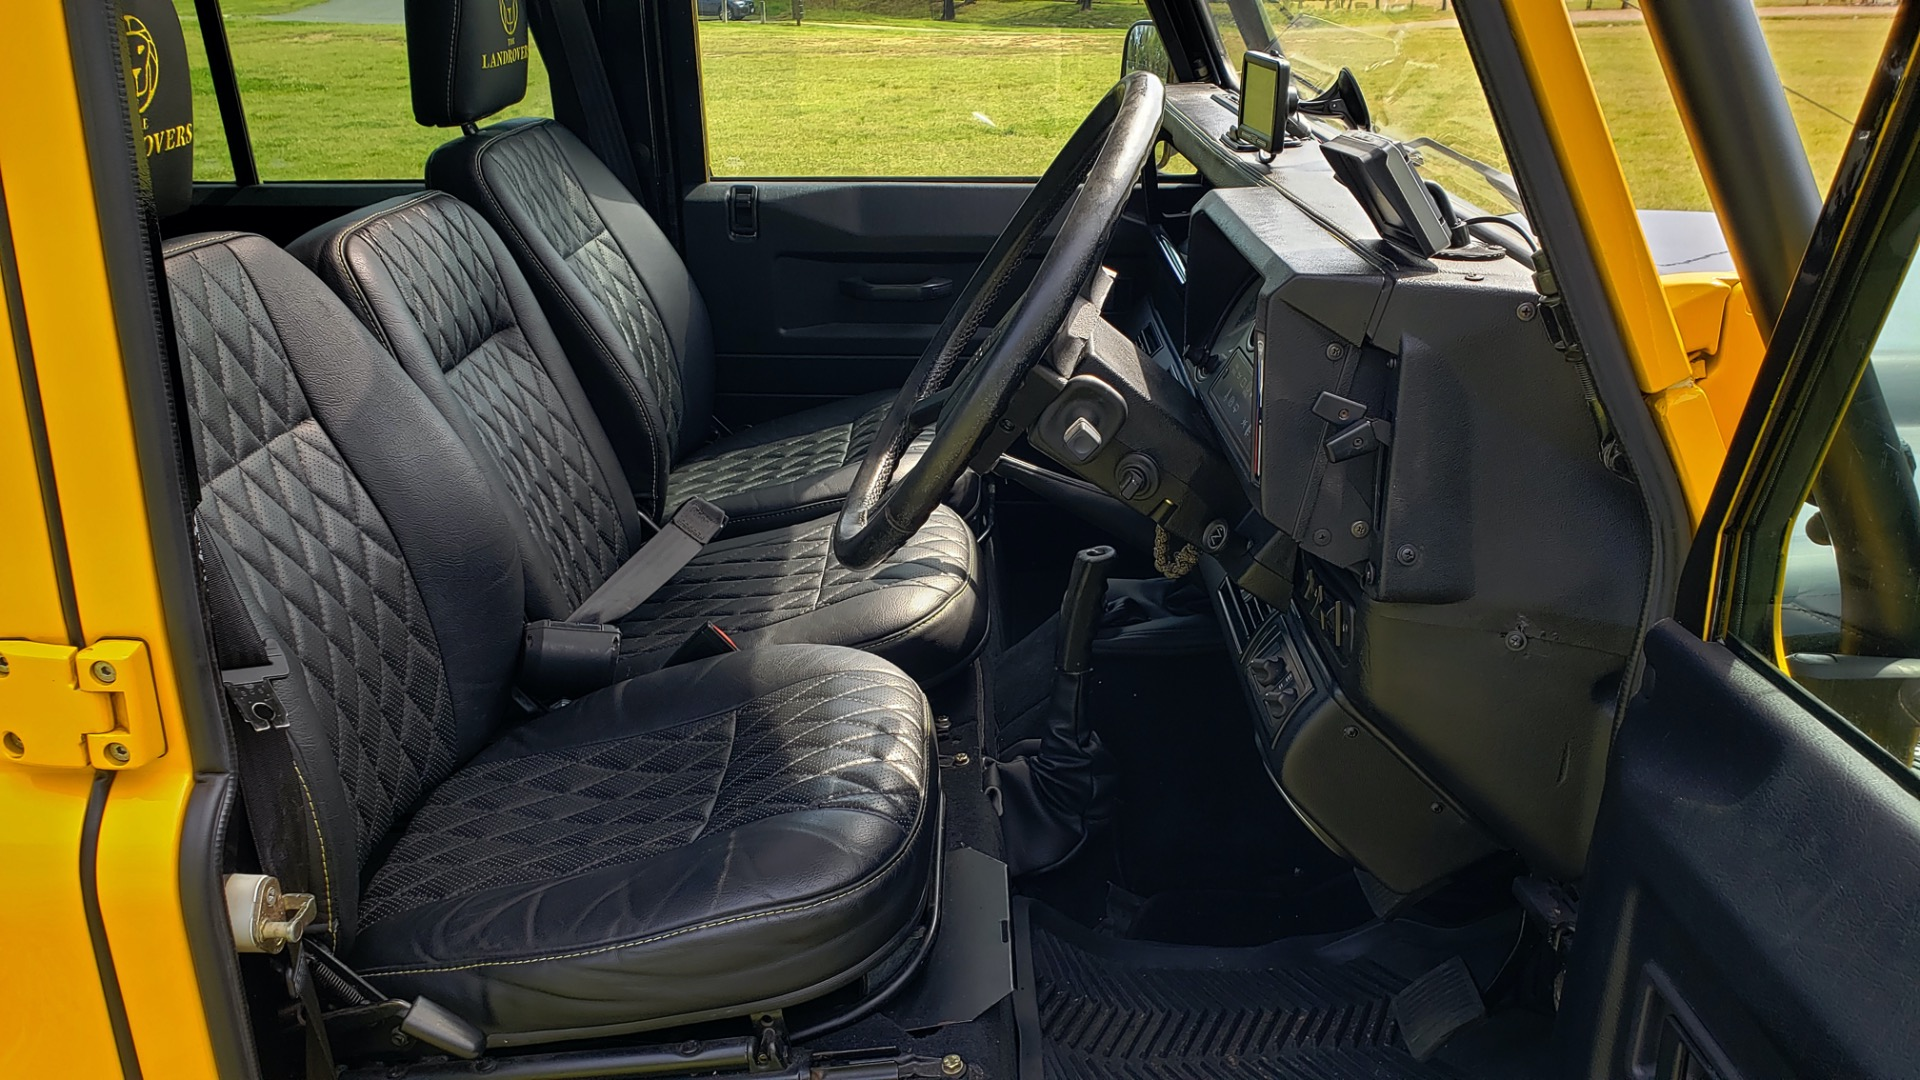 Used 1989 Land Rover Defender 110 4x4 Custom / Fully Restored / Fuel Injected V8 / 5-Spd Man for sale $60,000 at Formula Imports in Charlotte NC 28227 85